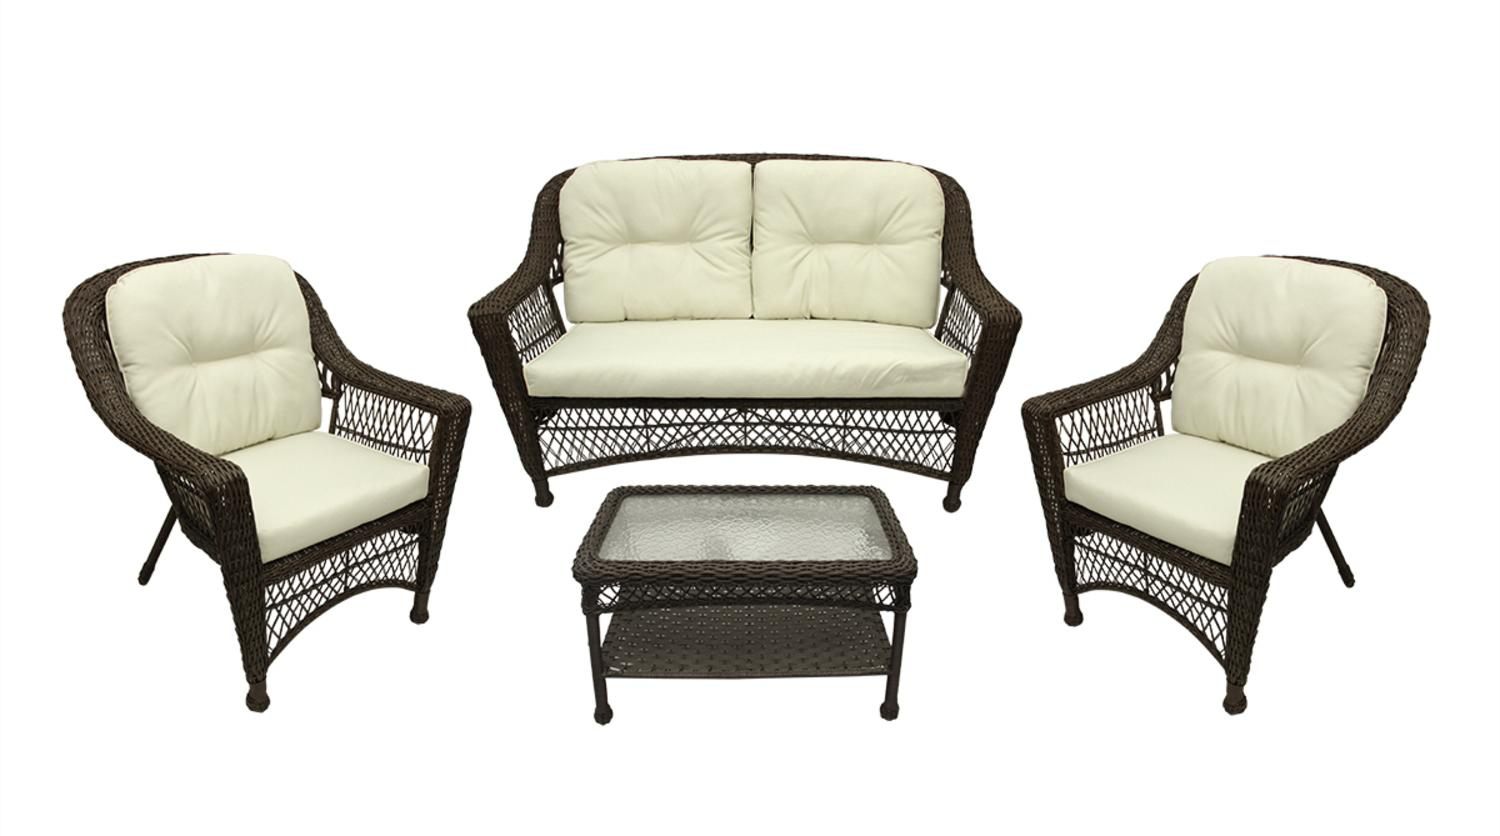 4-Pc Somerset Dark Brown Resin Wicker Patio Loveseat, Chairs & Table Furniture Set Cream Cushions by Gerson